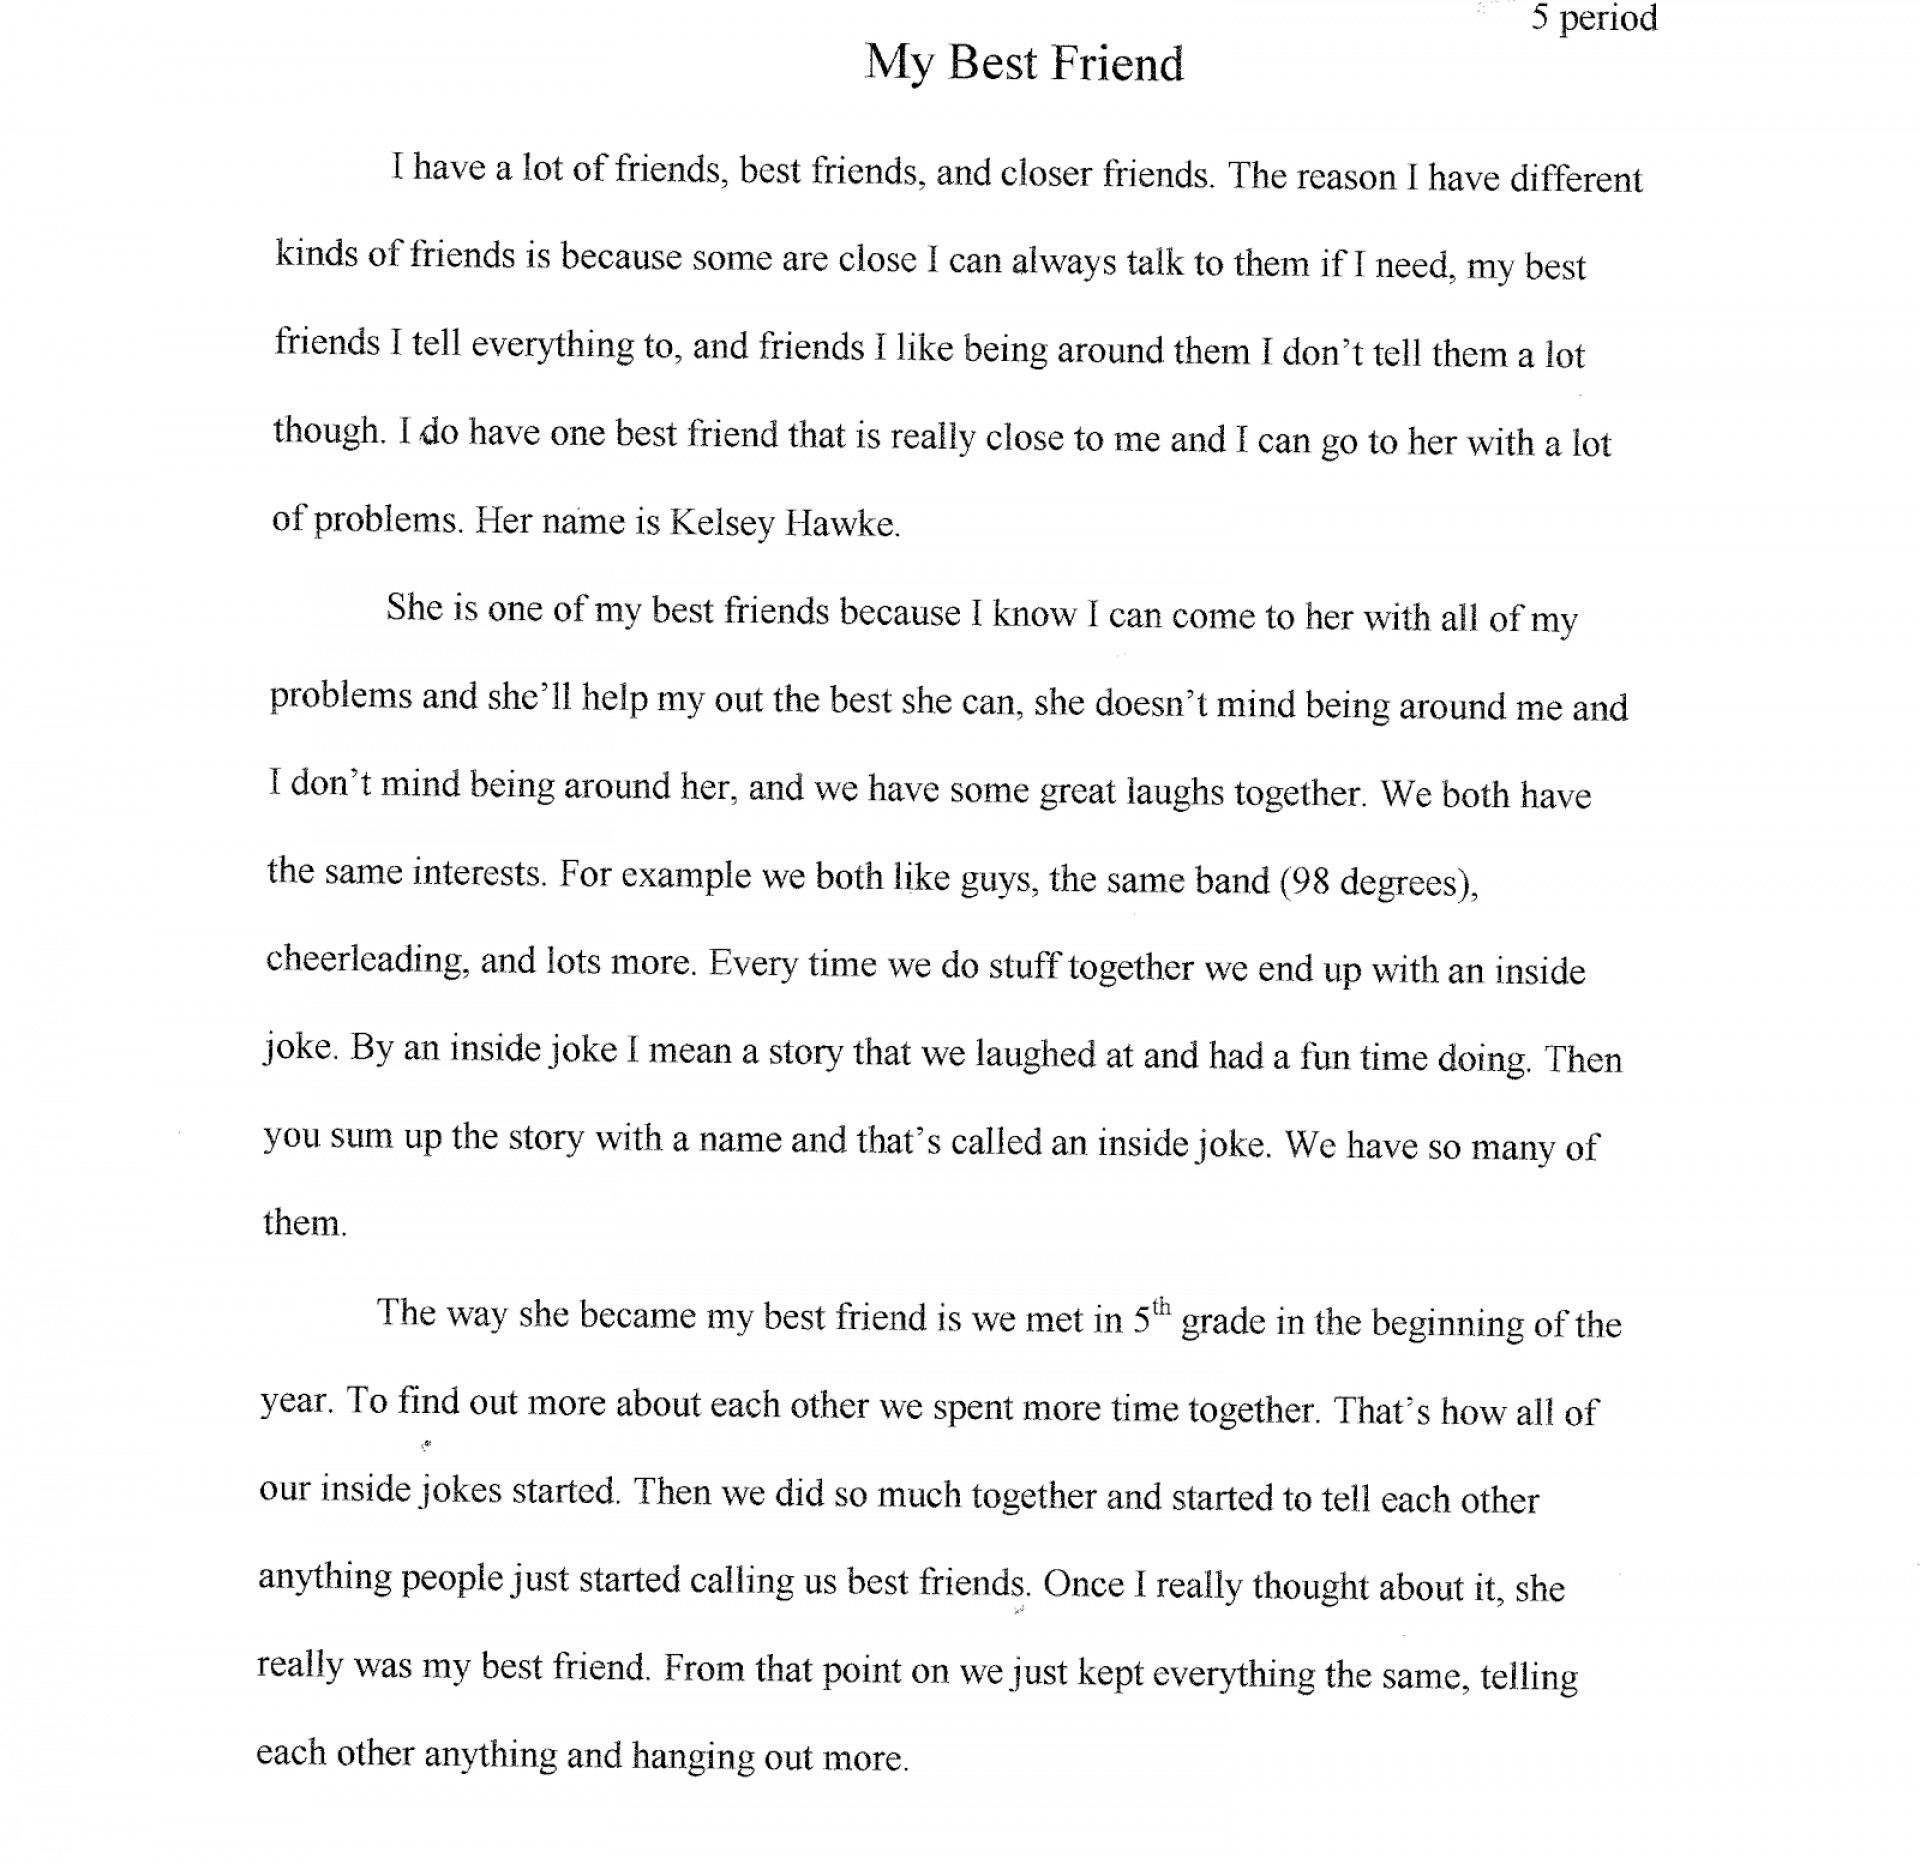 003 Essay Example 6th Bestfriend Post1 My Best Friend In Sensational English For Class 8 Pdf 2 1920